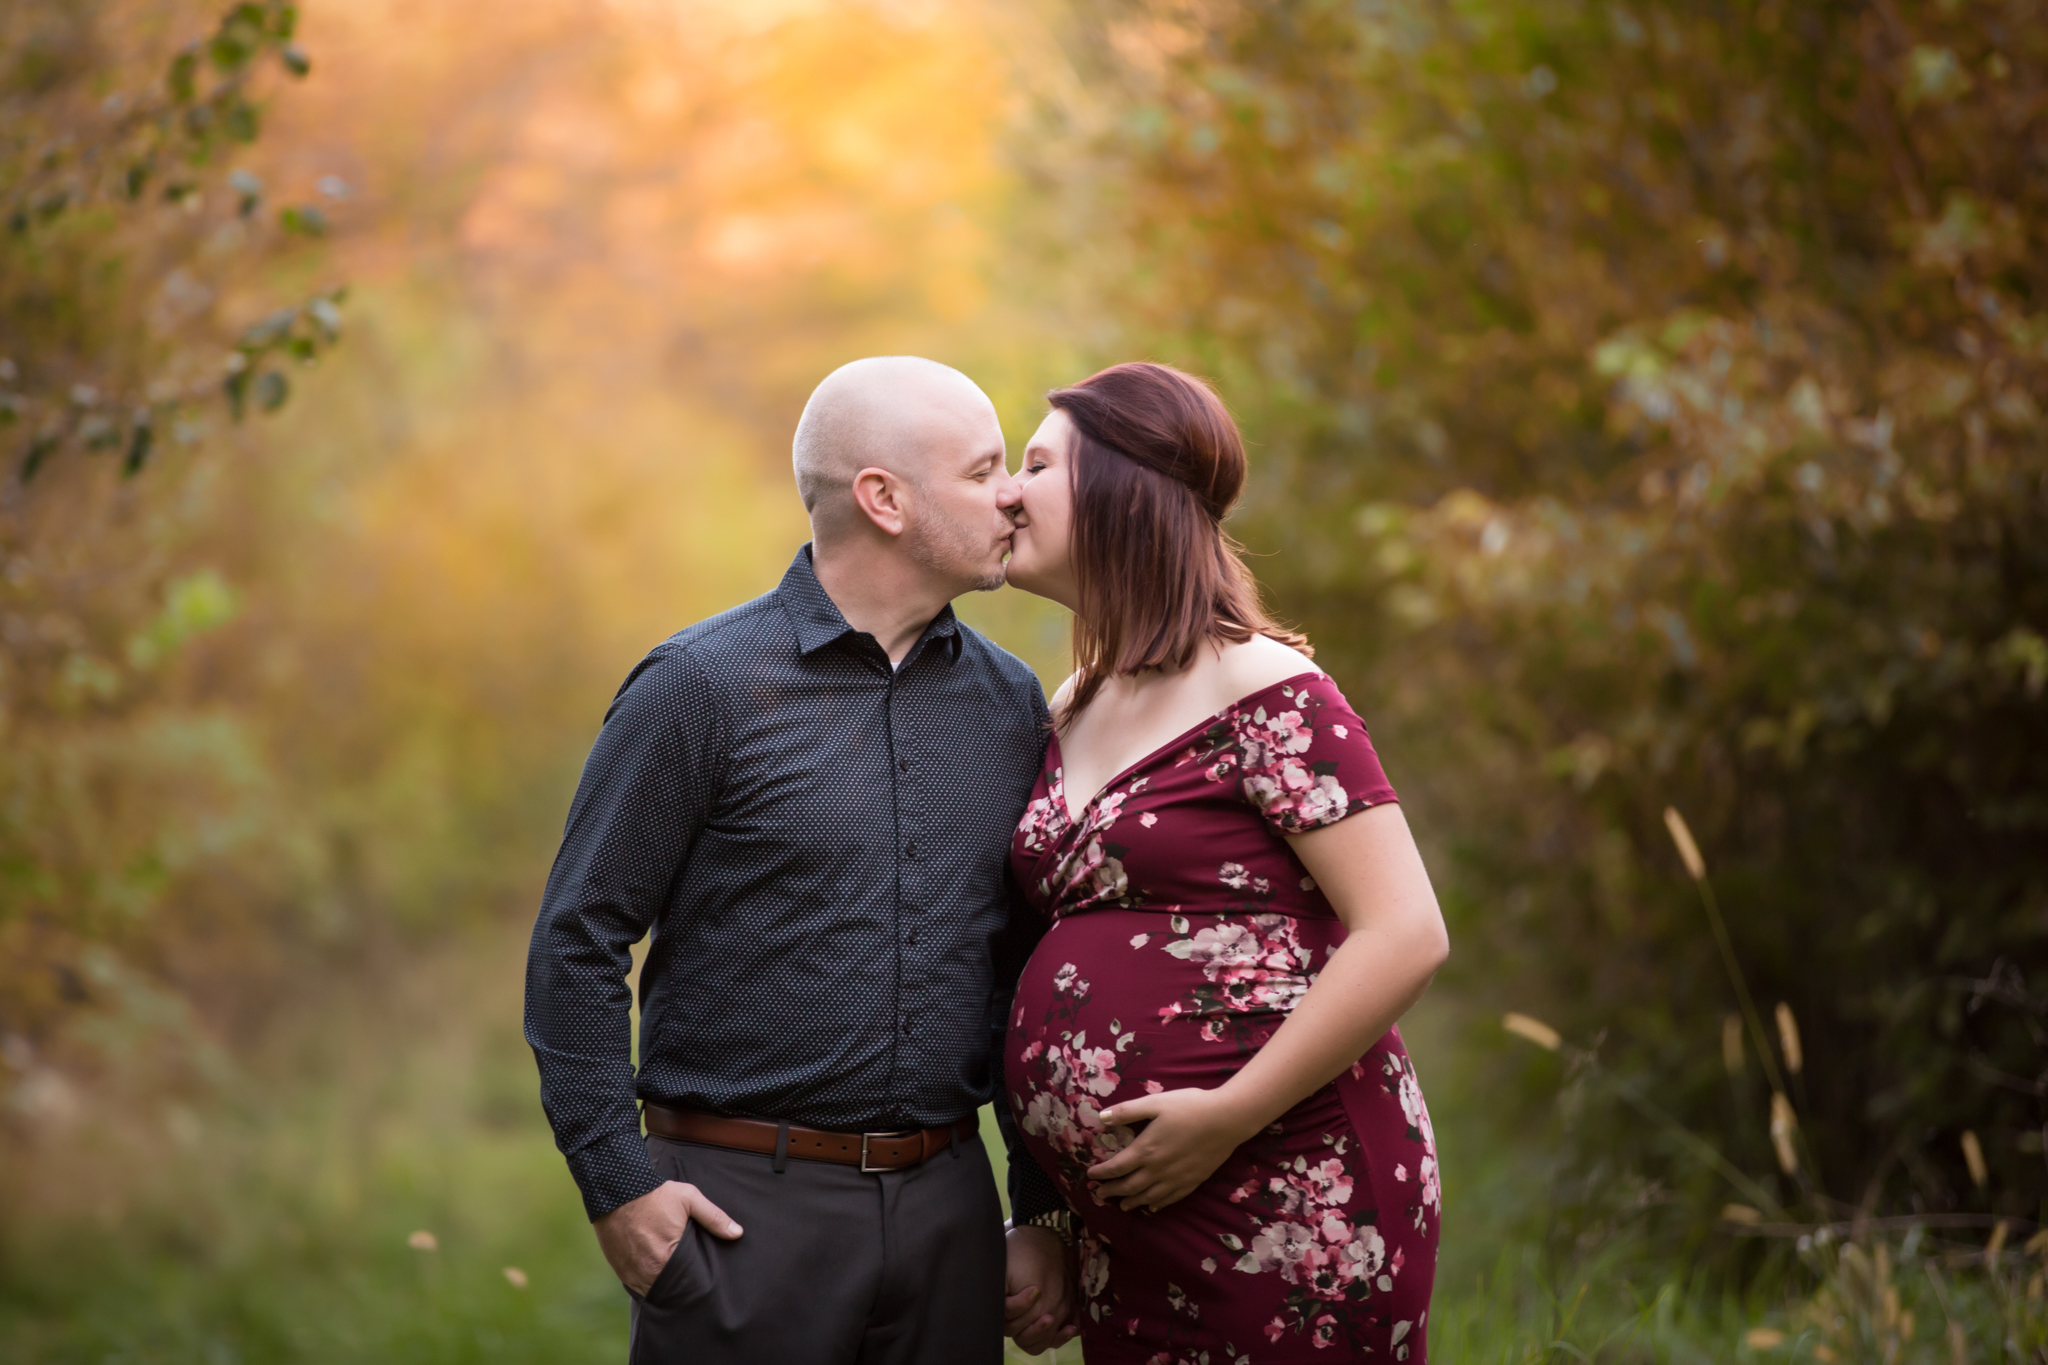 Family Fall Sessions wiht colorful leaves maternity, pet poses  - Cara Peterson Photography Rockford IL-6-2.jpg